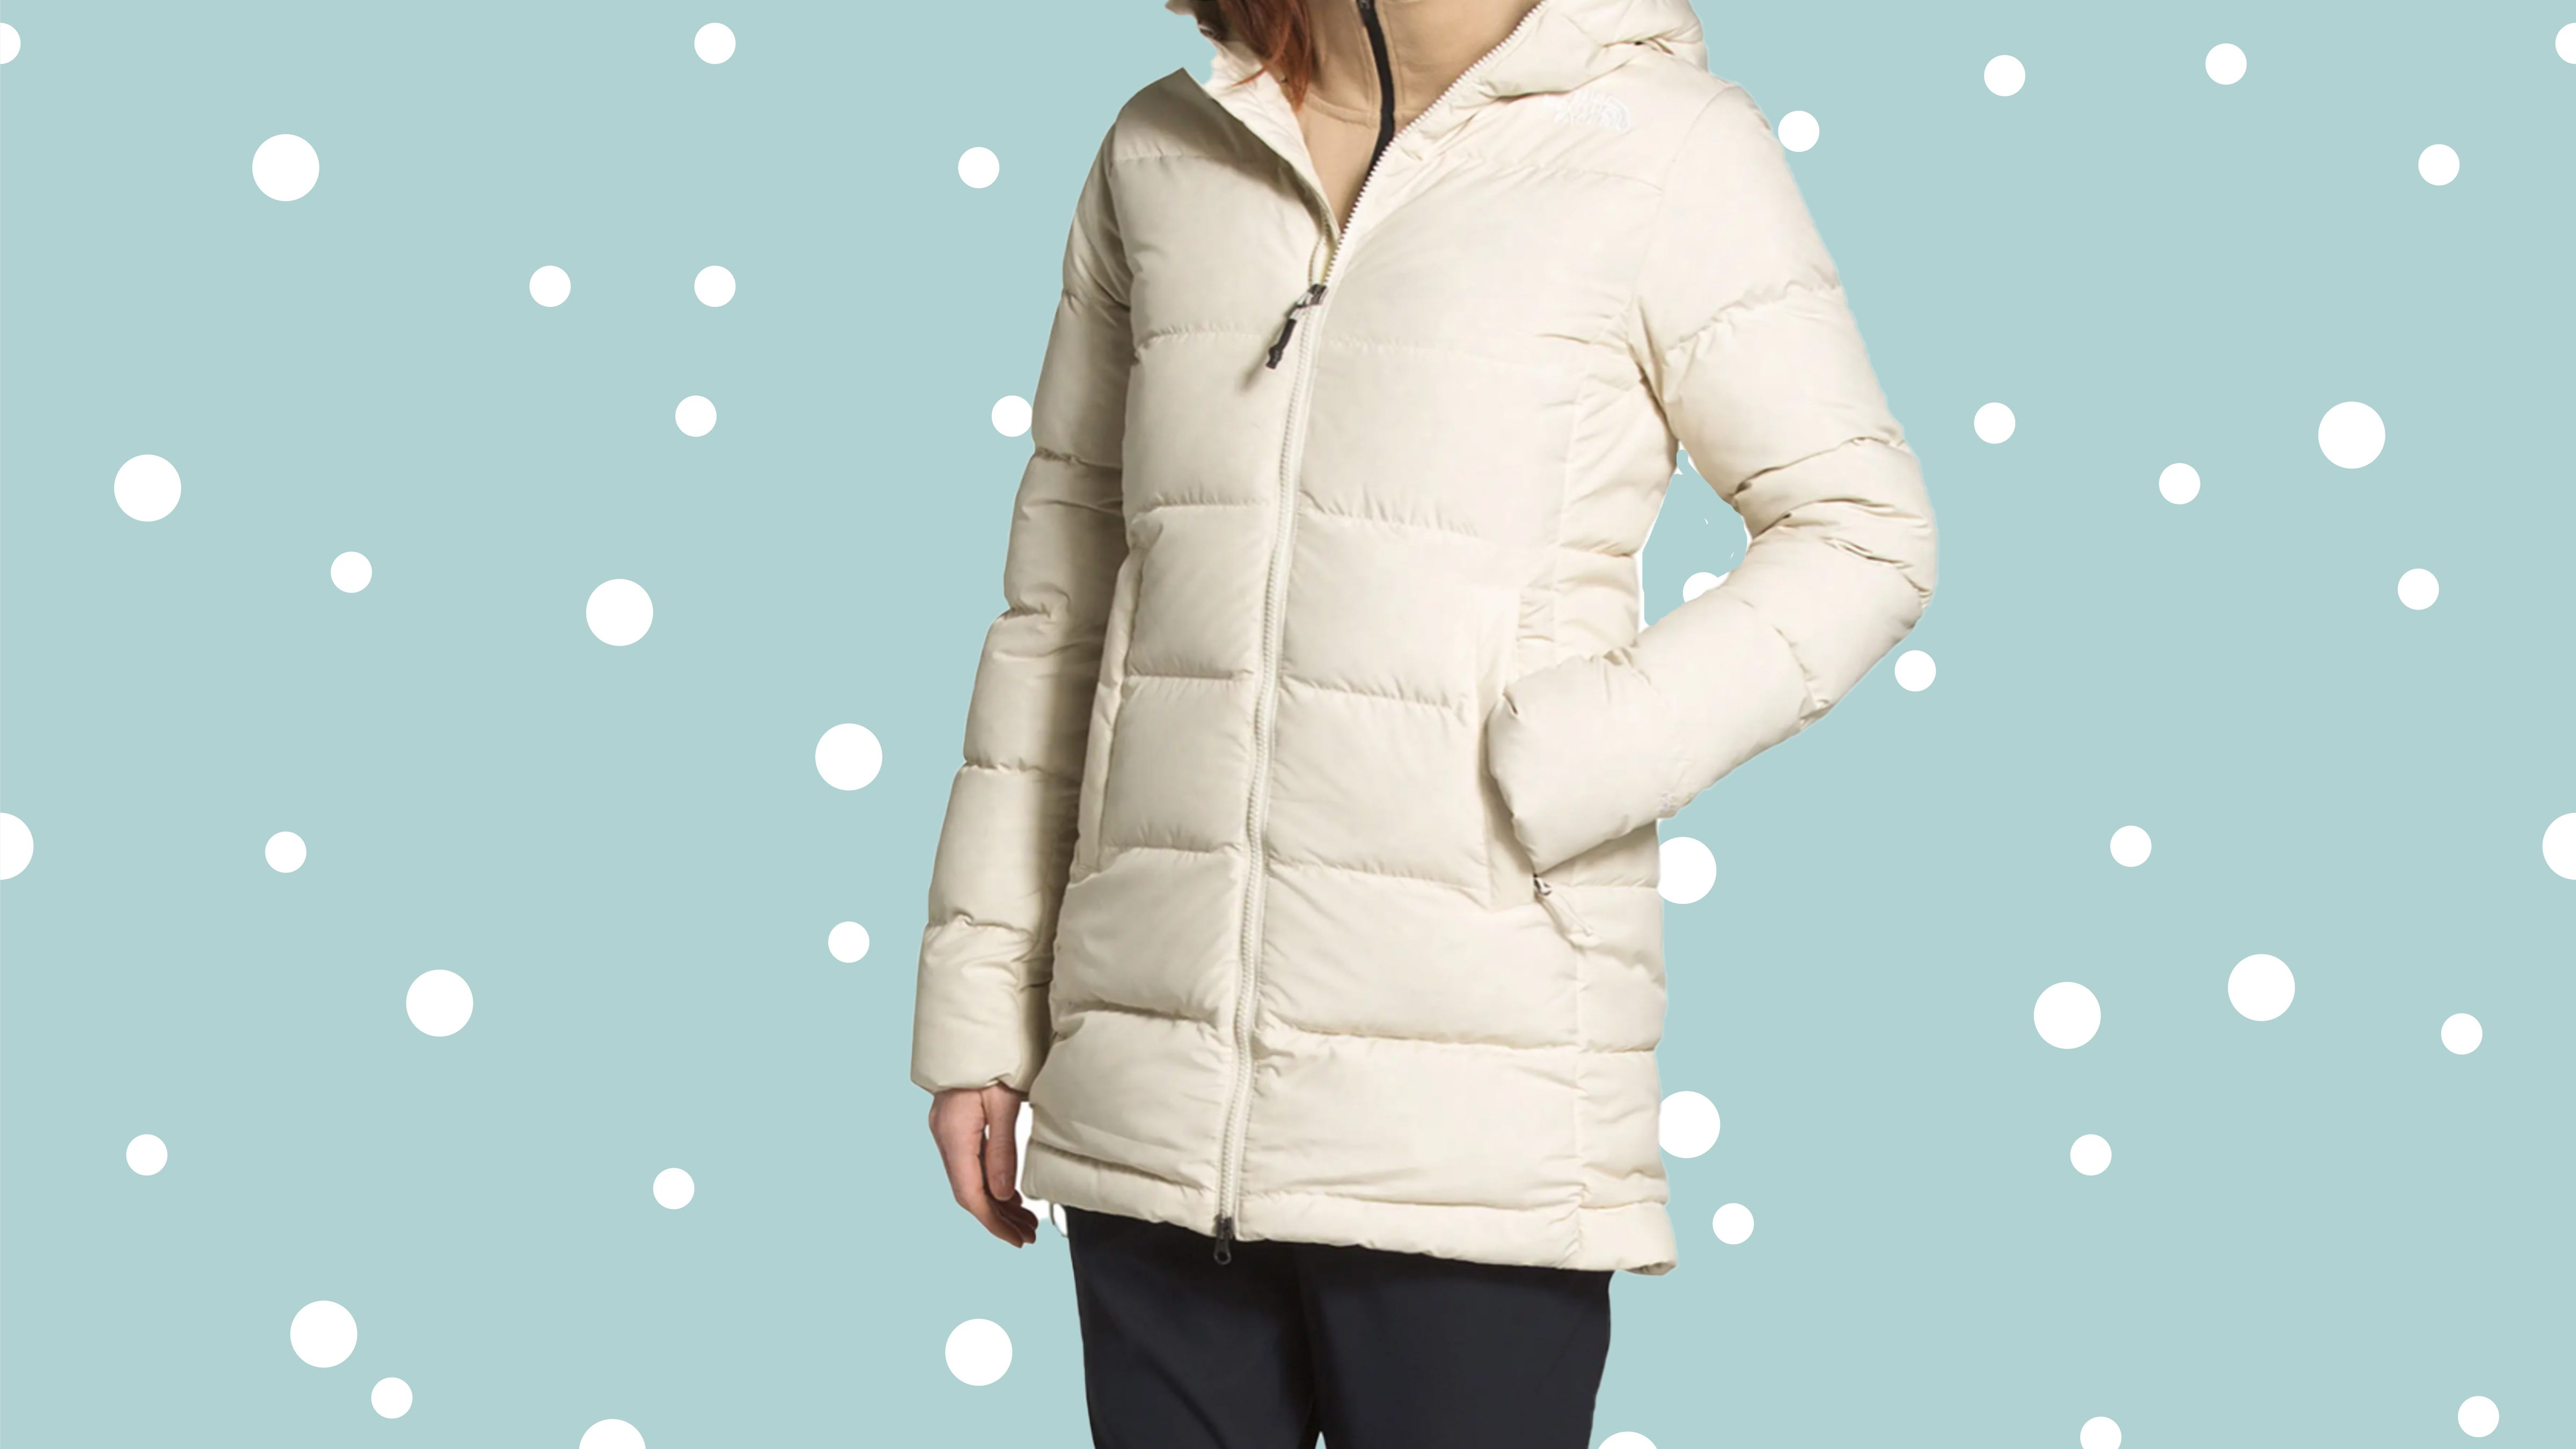 The North Face coats and jackets are up to 50% off at Nordstrom's winter sale